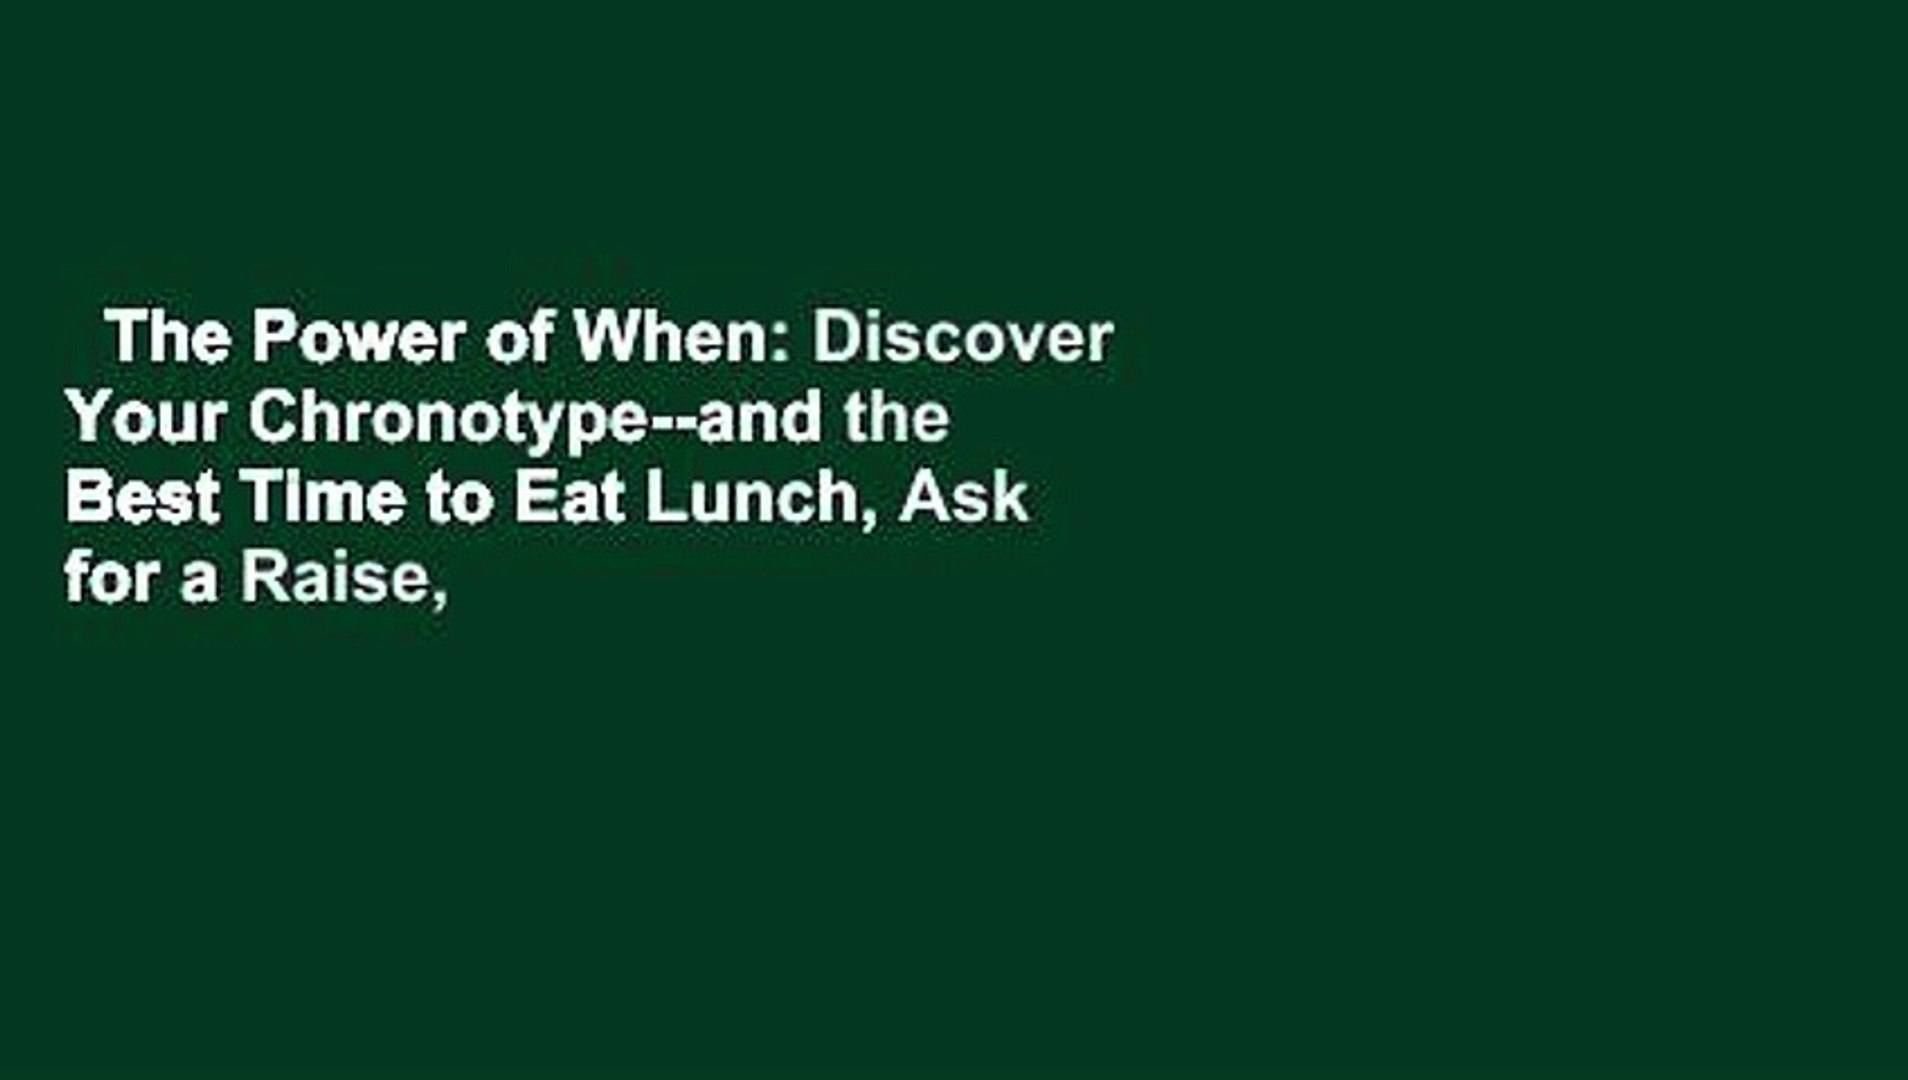 The Power of When: Discover Your Chronotype--and the Best Time to Eat Lunch, Ask for a Raise,